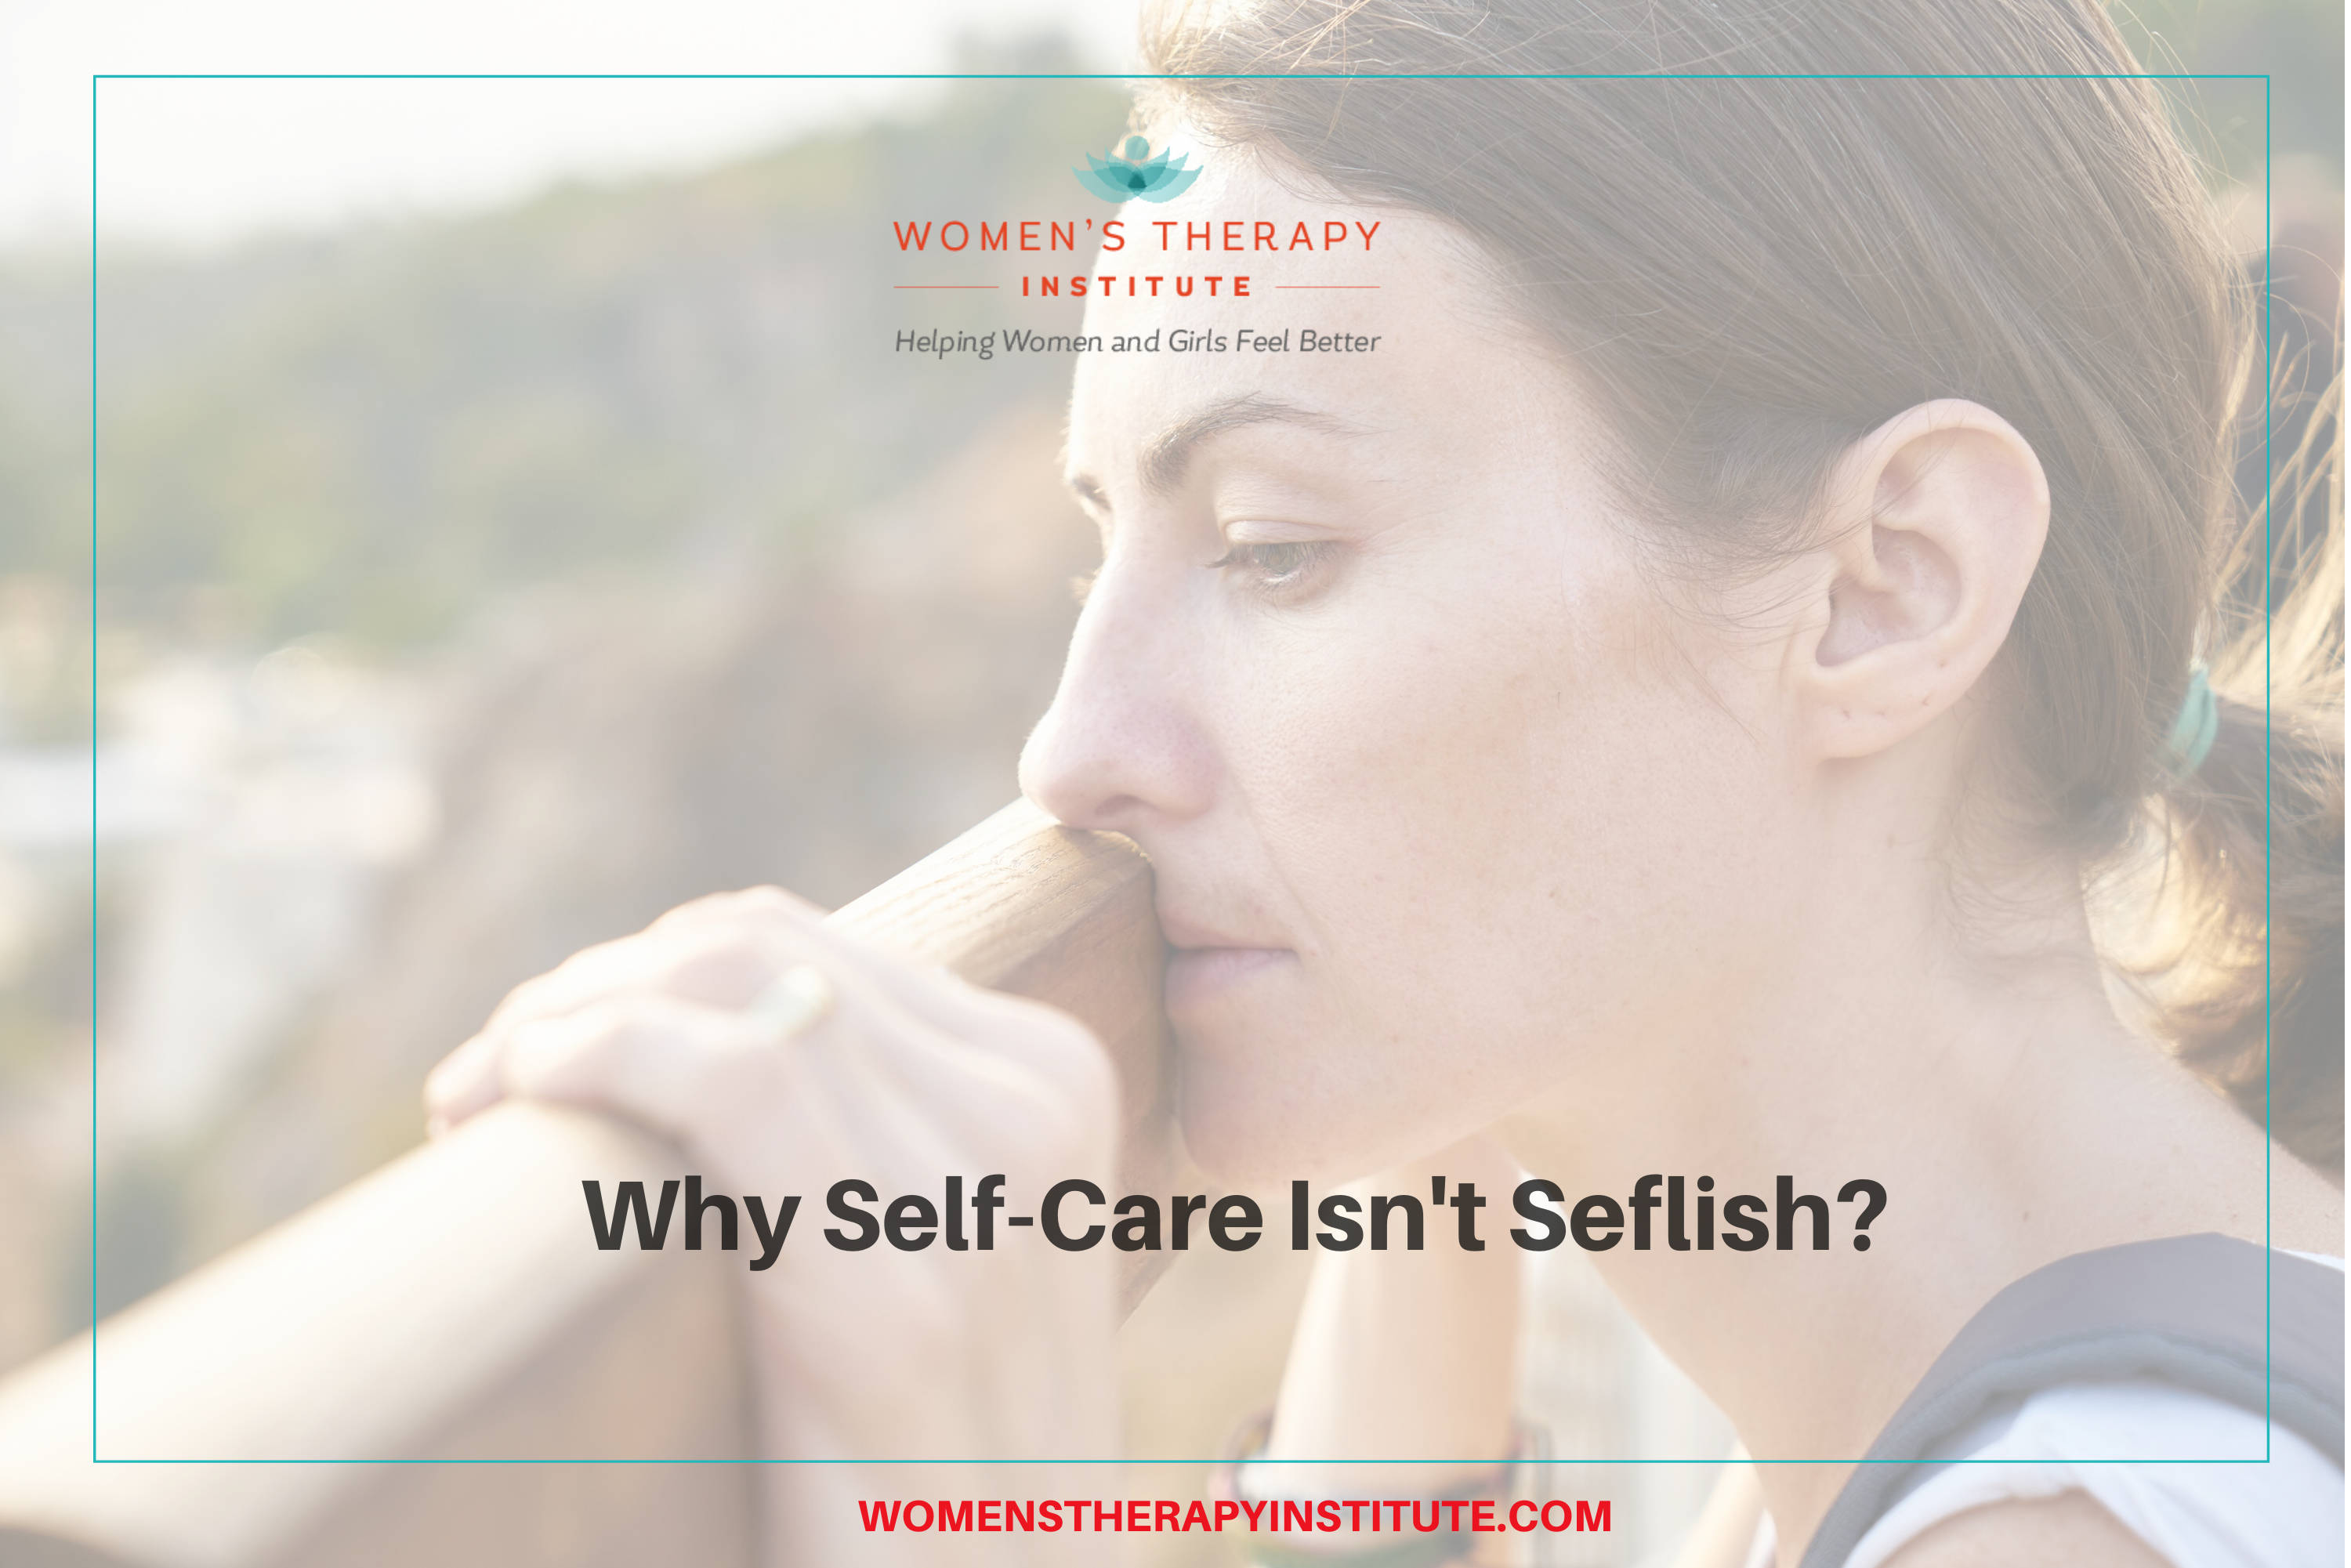 self care, care, self-care, selfish, selfishness, woman, women, therapy, cure, feminism, women empowerment